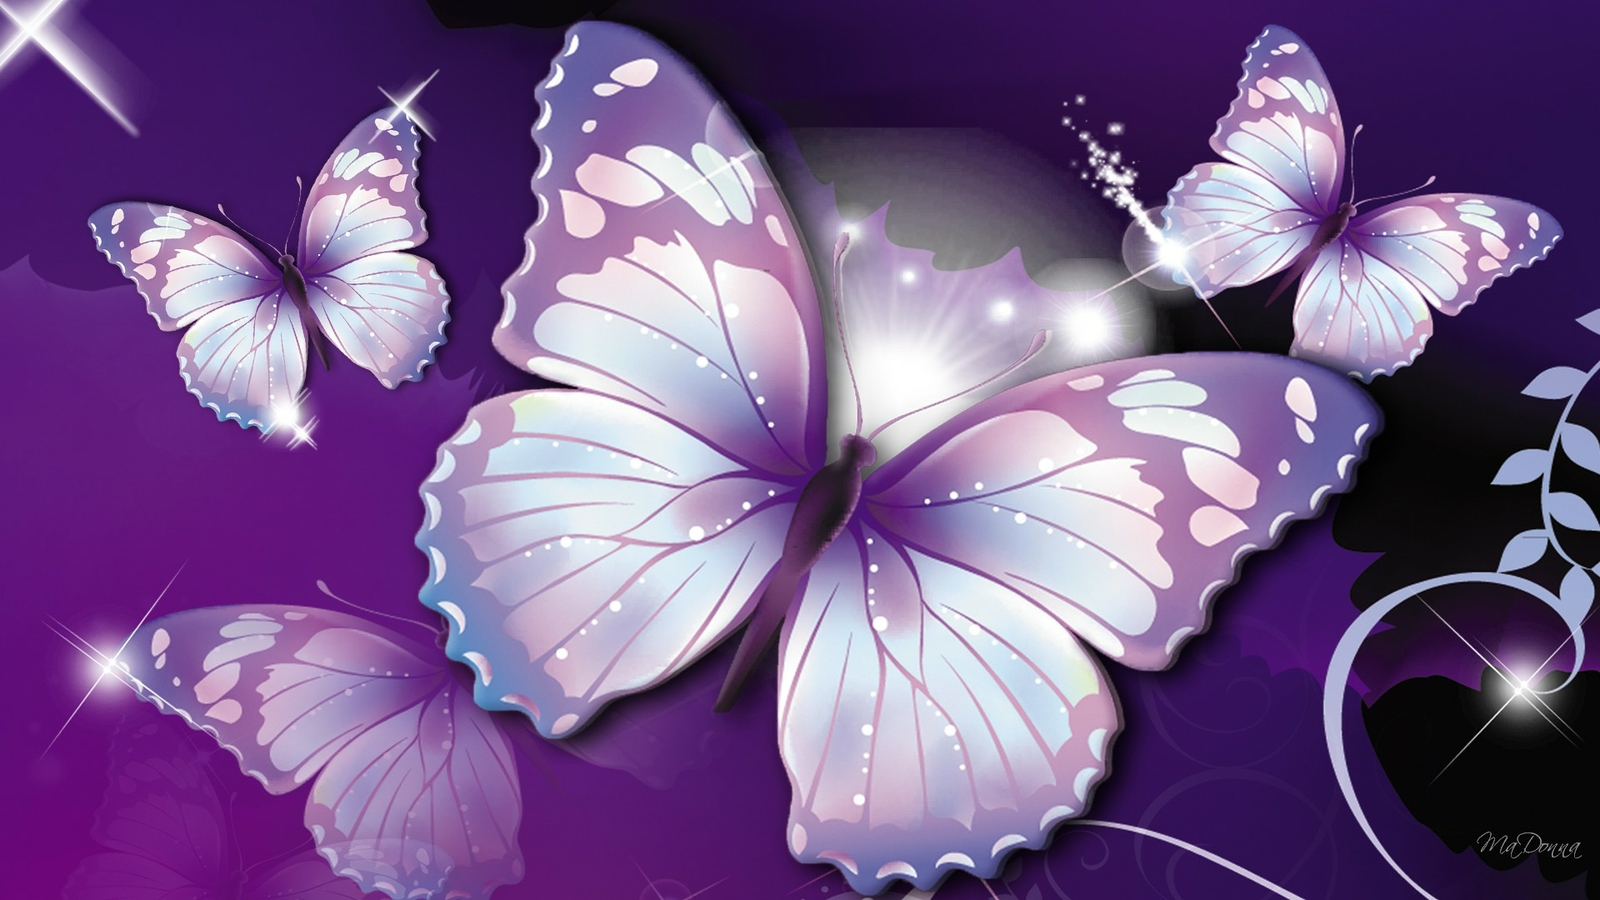 21 Beautiful Butterfly Wallpapers 4k Ultra Hd